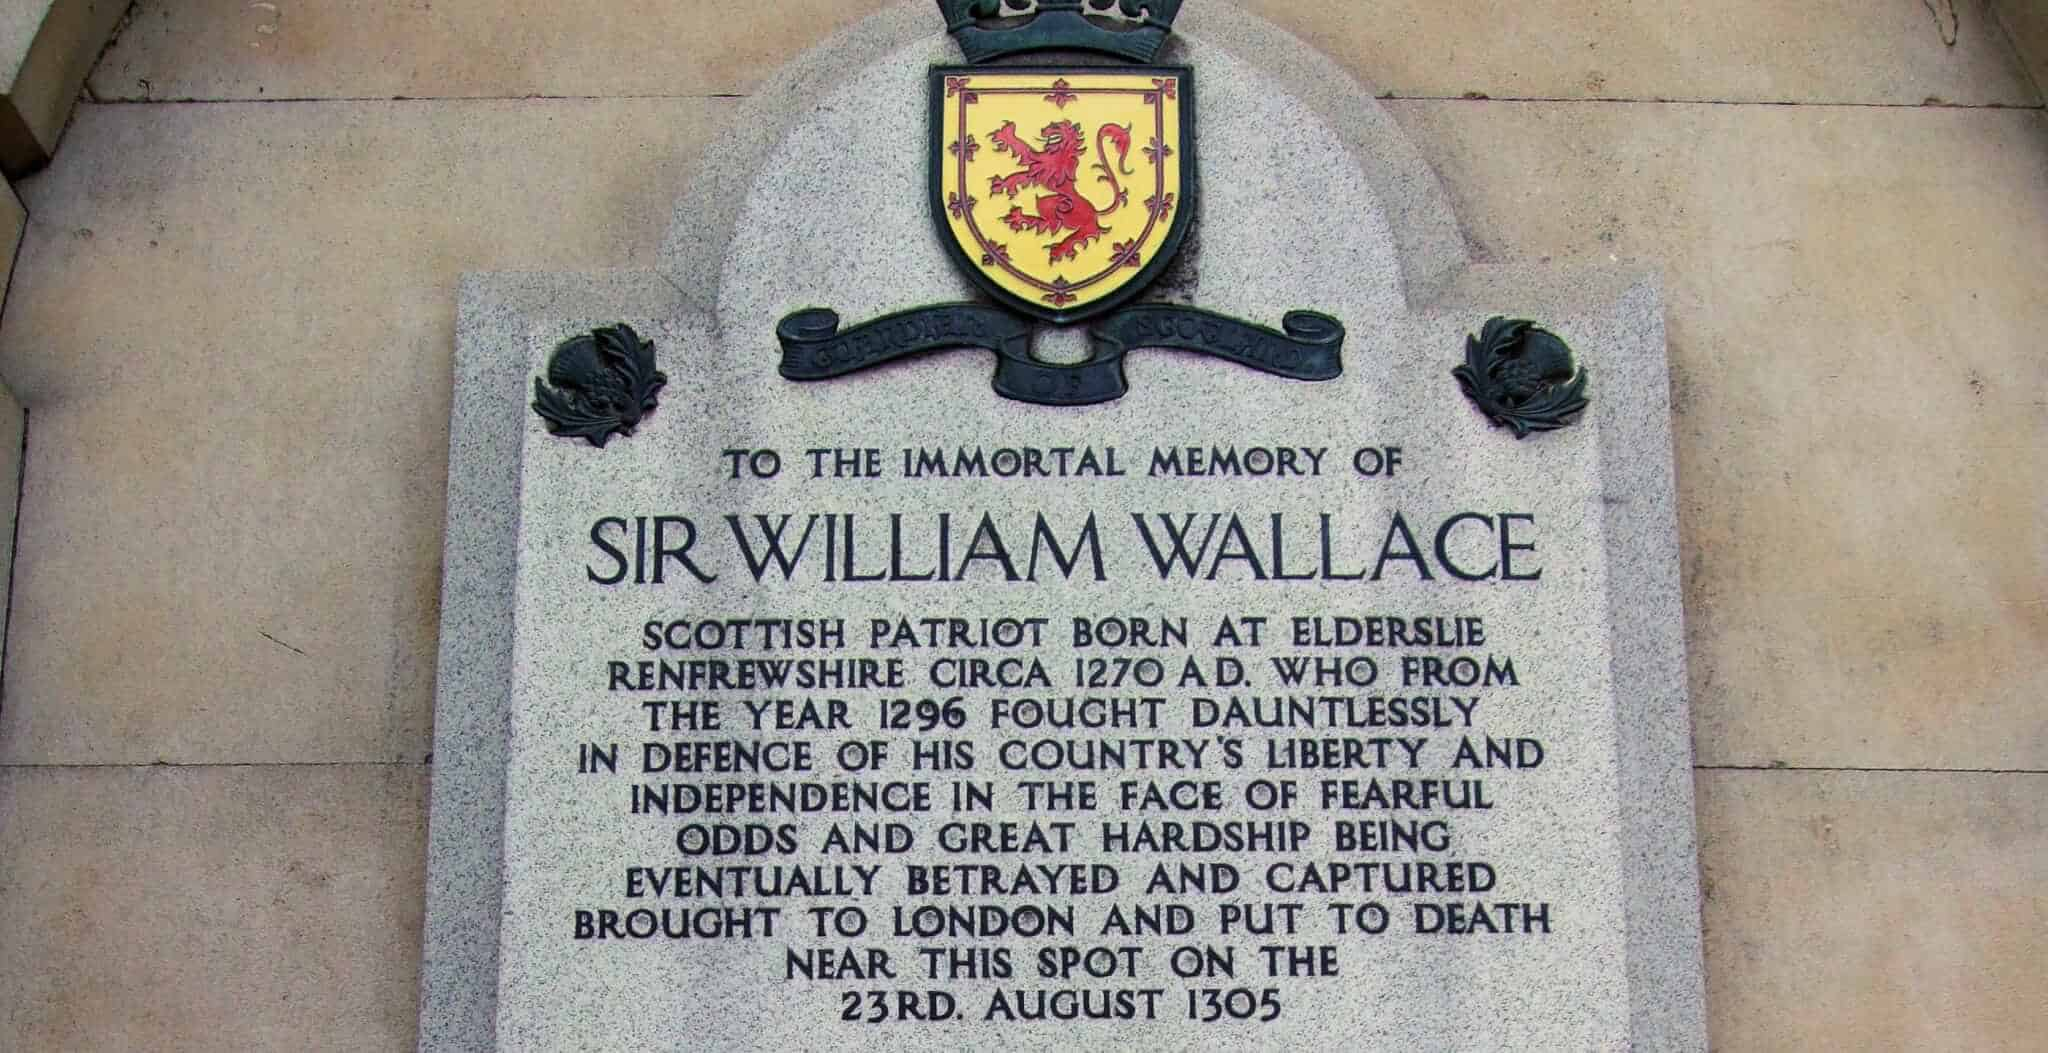 wallace execution site